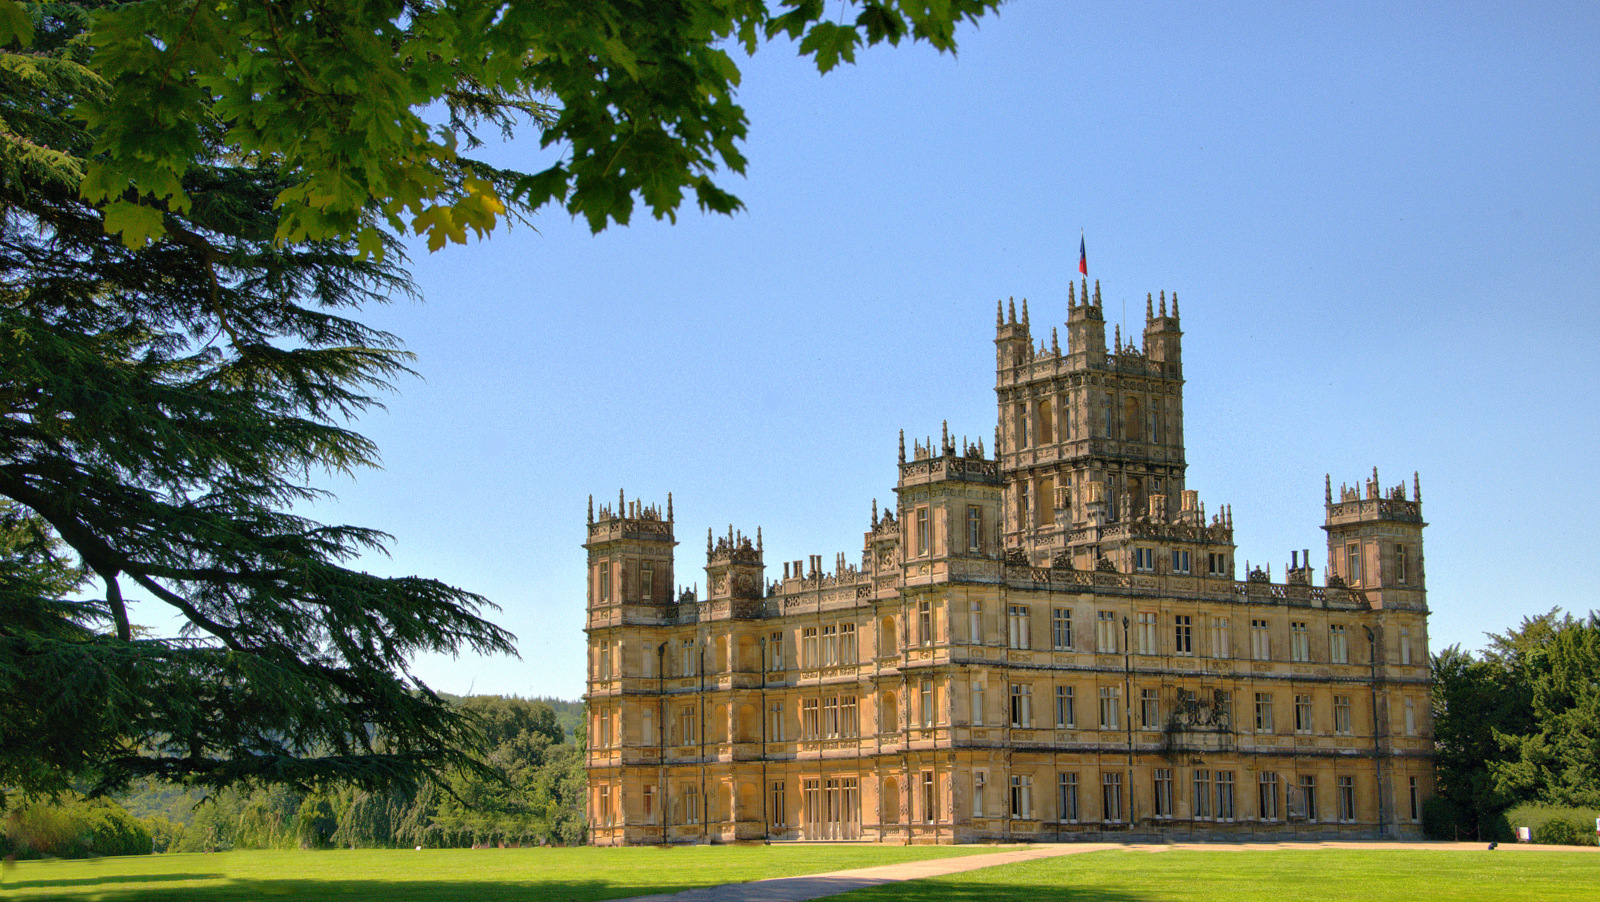 Highclere Castle - Downton Abbey - Mon 9th April 2018